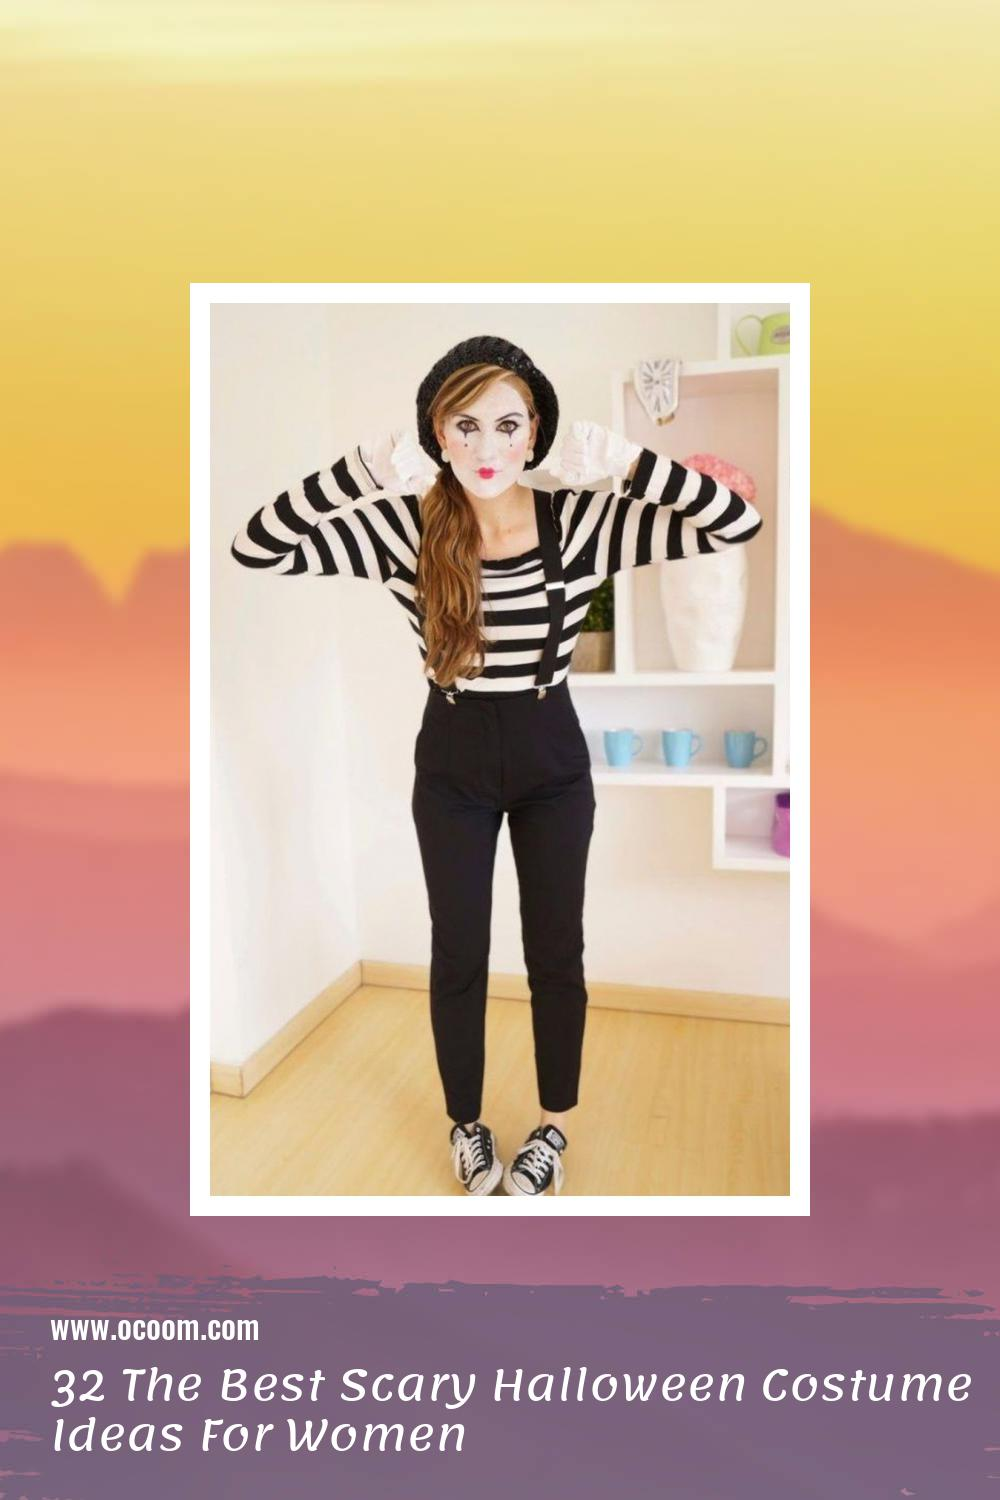 32 The Best Scary Halloween Costume Ideas For Women 53